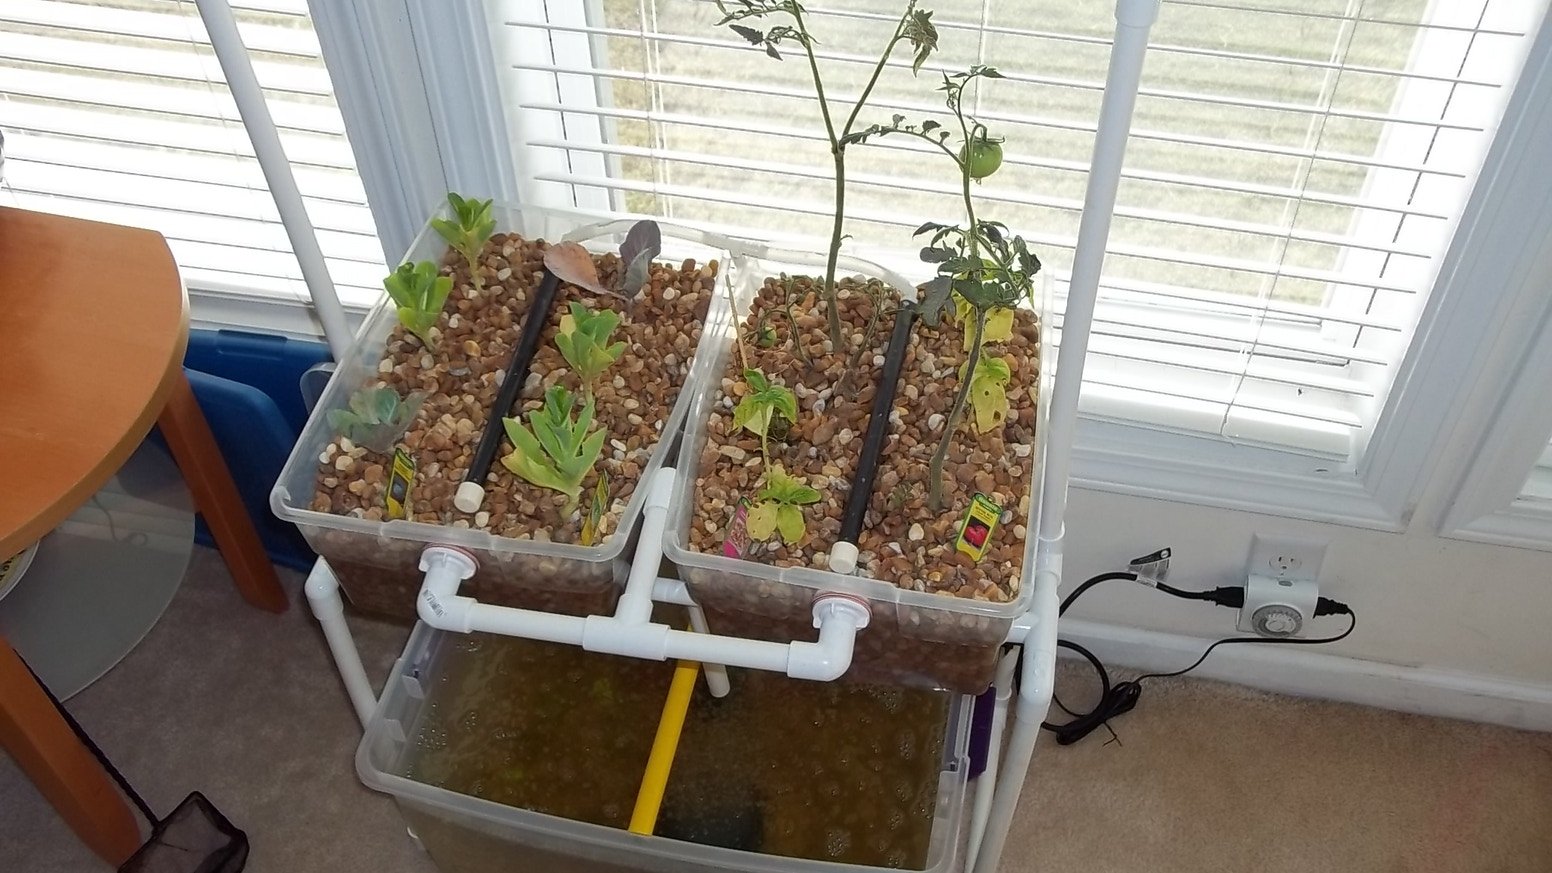 Apartment / Indoor Aquaponics System by Renewable DIY ... on small home aquaculture, small grow kits, small home farm, small home growing, small home composting, small home community, small home orchard, small home design, small home homesteading, small home products, small home gardening, small home water purification, small home ponds, small home technology, small home diy, small home solar power, small home architecture, small home sustainable development, small home nursery, small home aquarium,